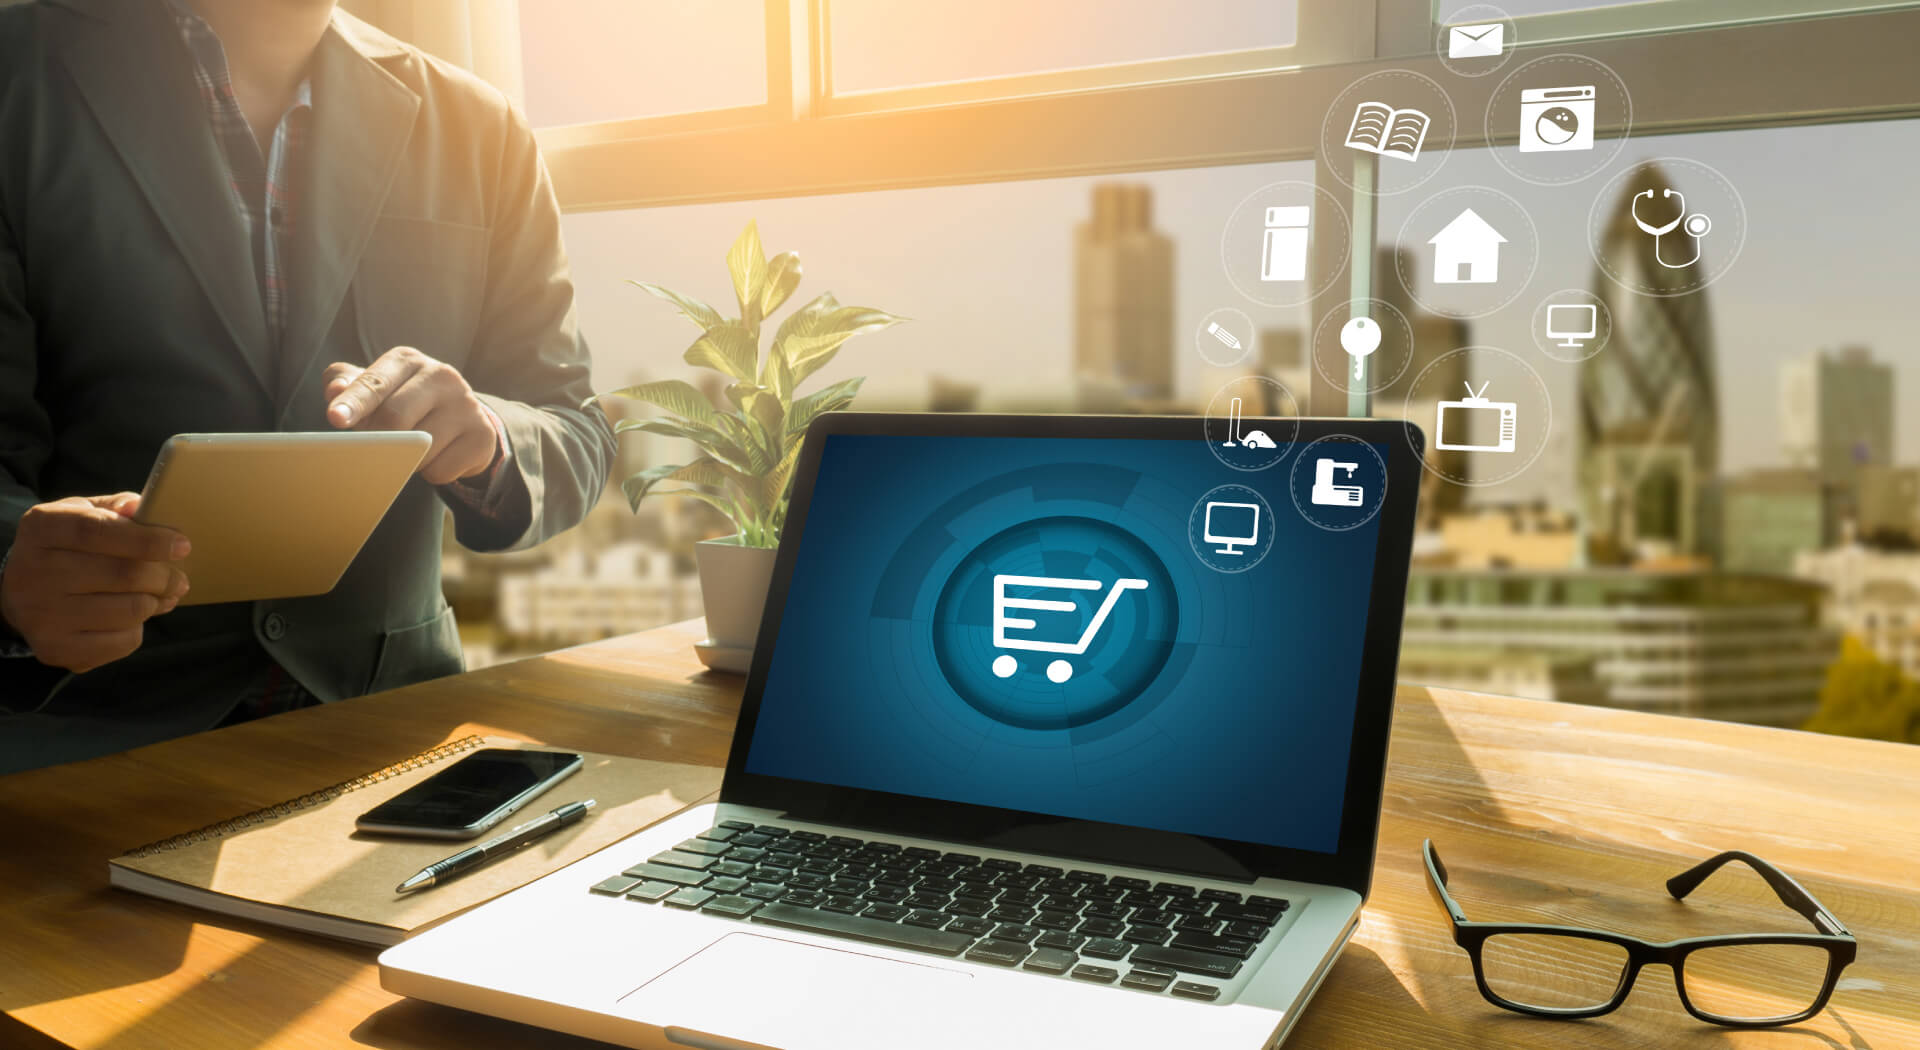 Hexaware and Spryker Partner to Transform Digital Commerce